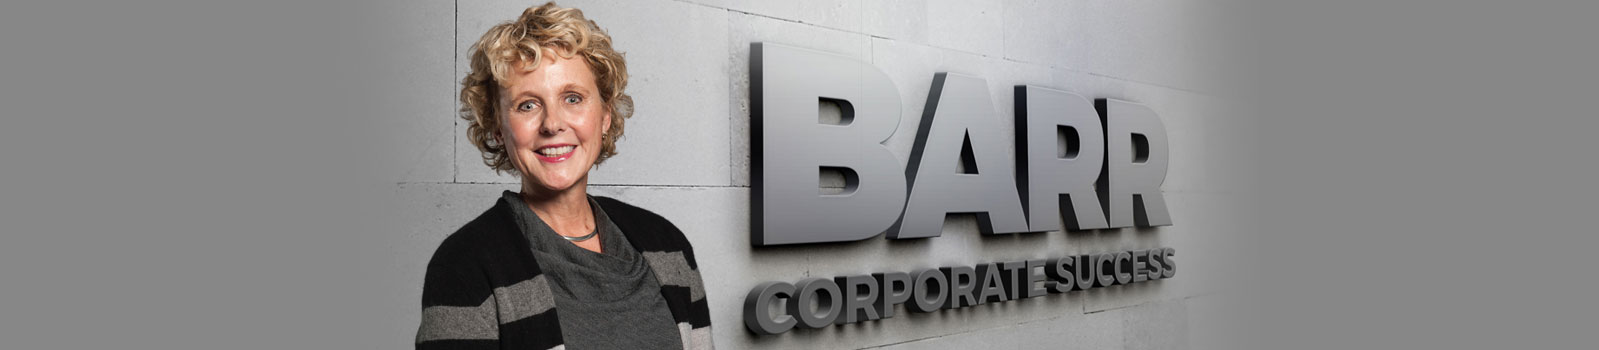 About Barr Corporate Success